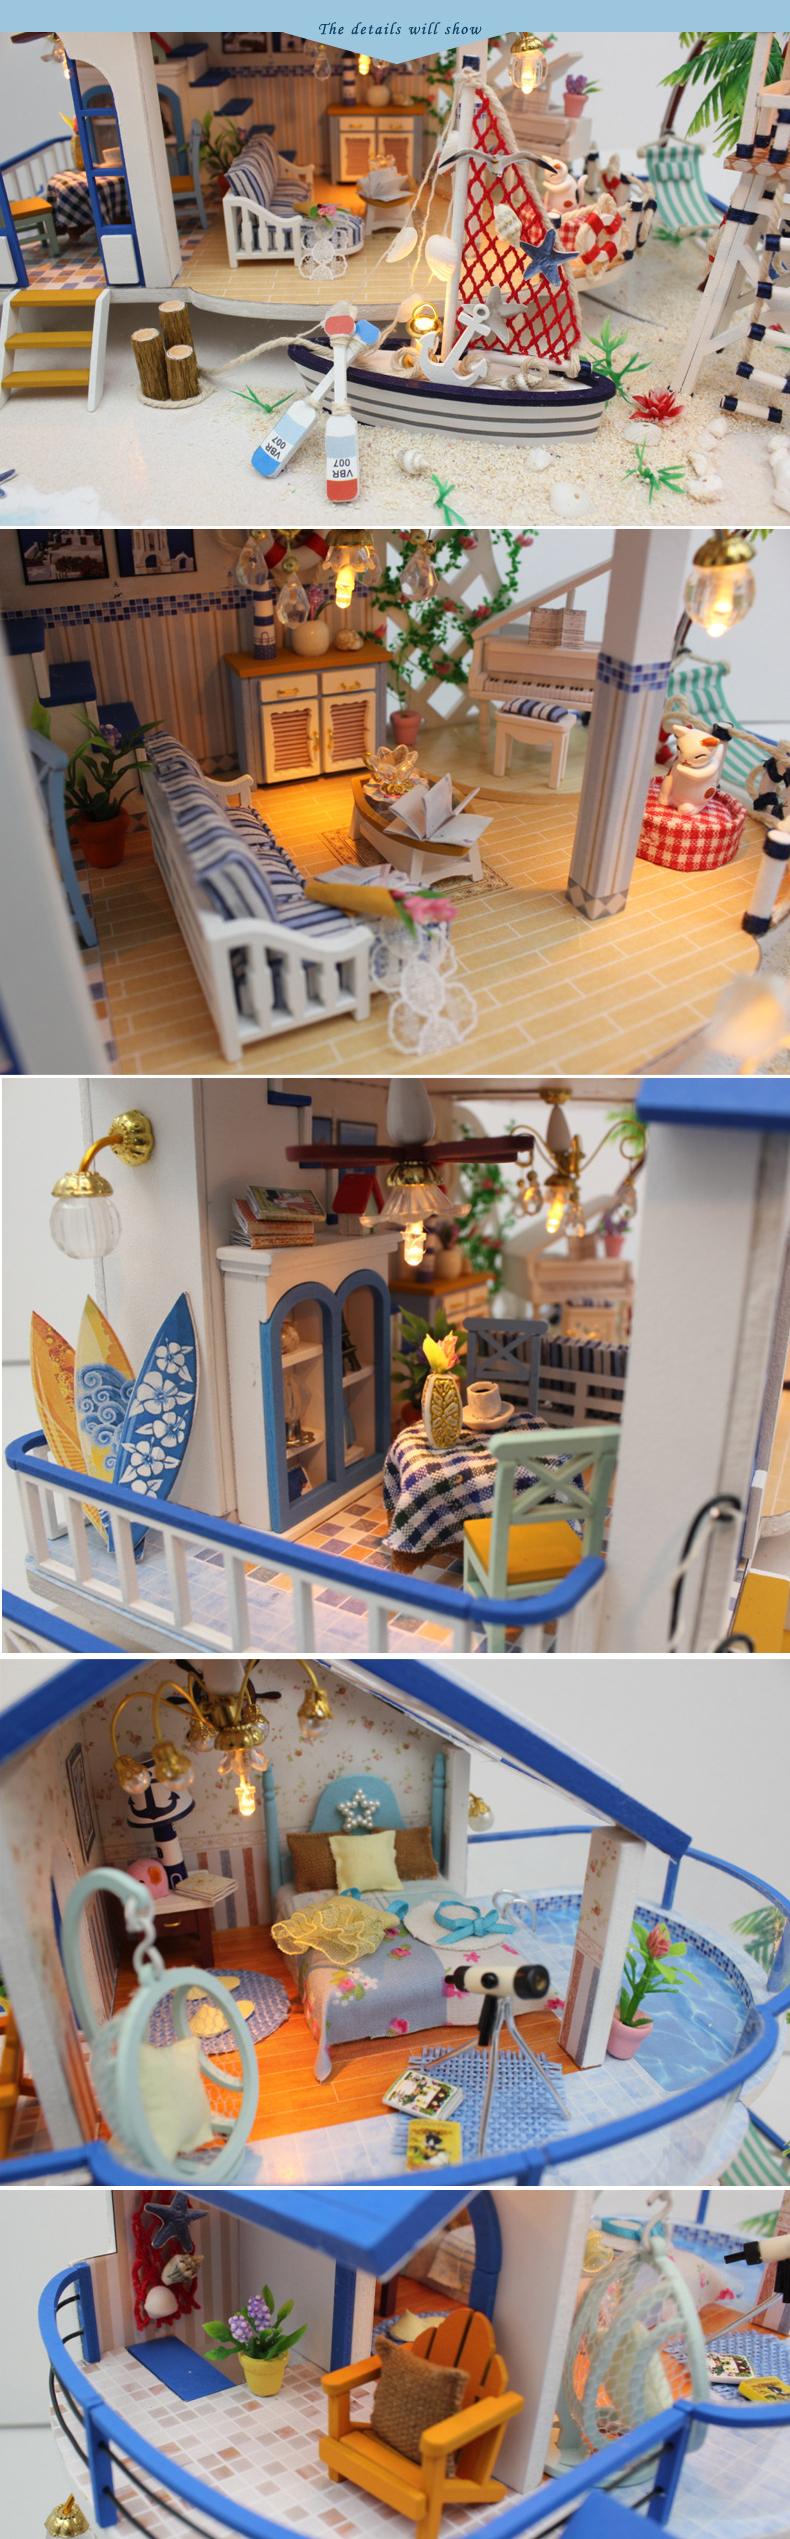 DIY DollHouse Villa Model Miniature With Furnitures Wooden Doll House  Building Toys Gift Legend Of Blue Ocean 13844 Dolls House Baby Folding  Barbie